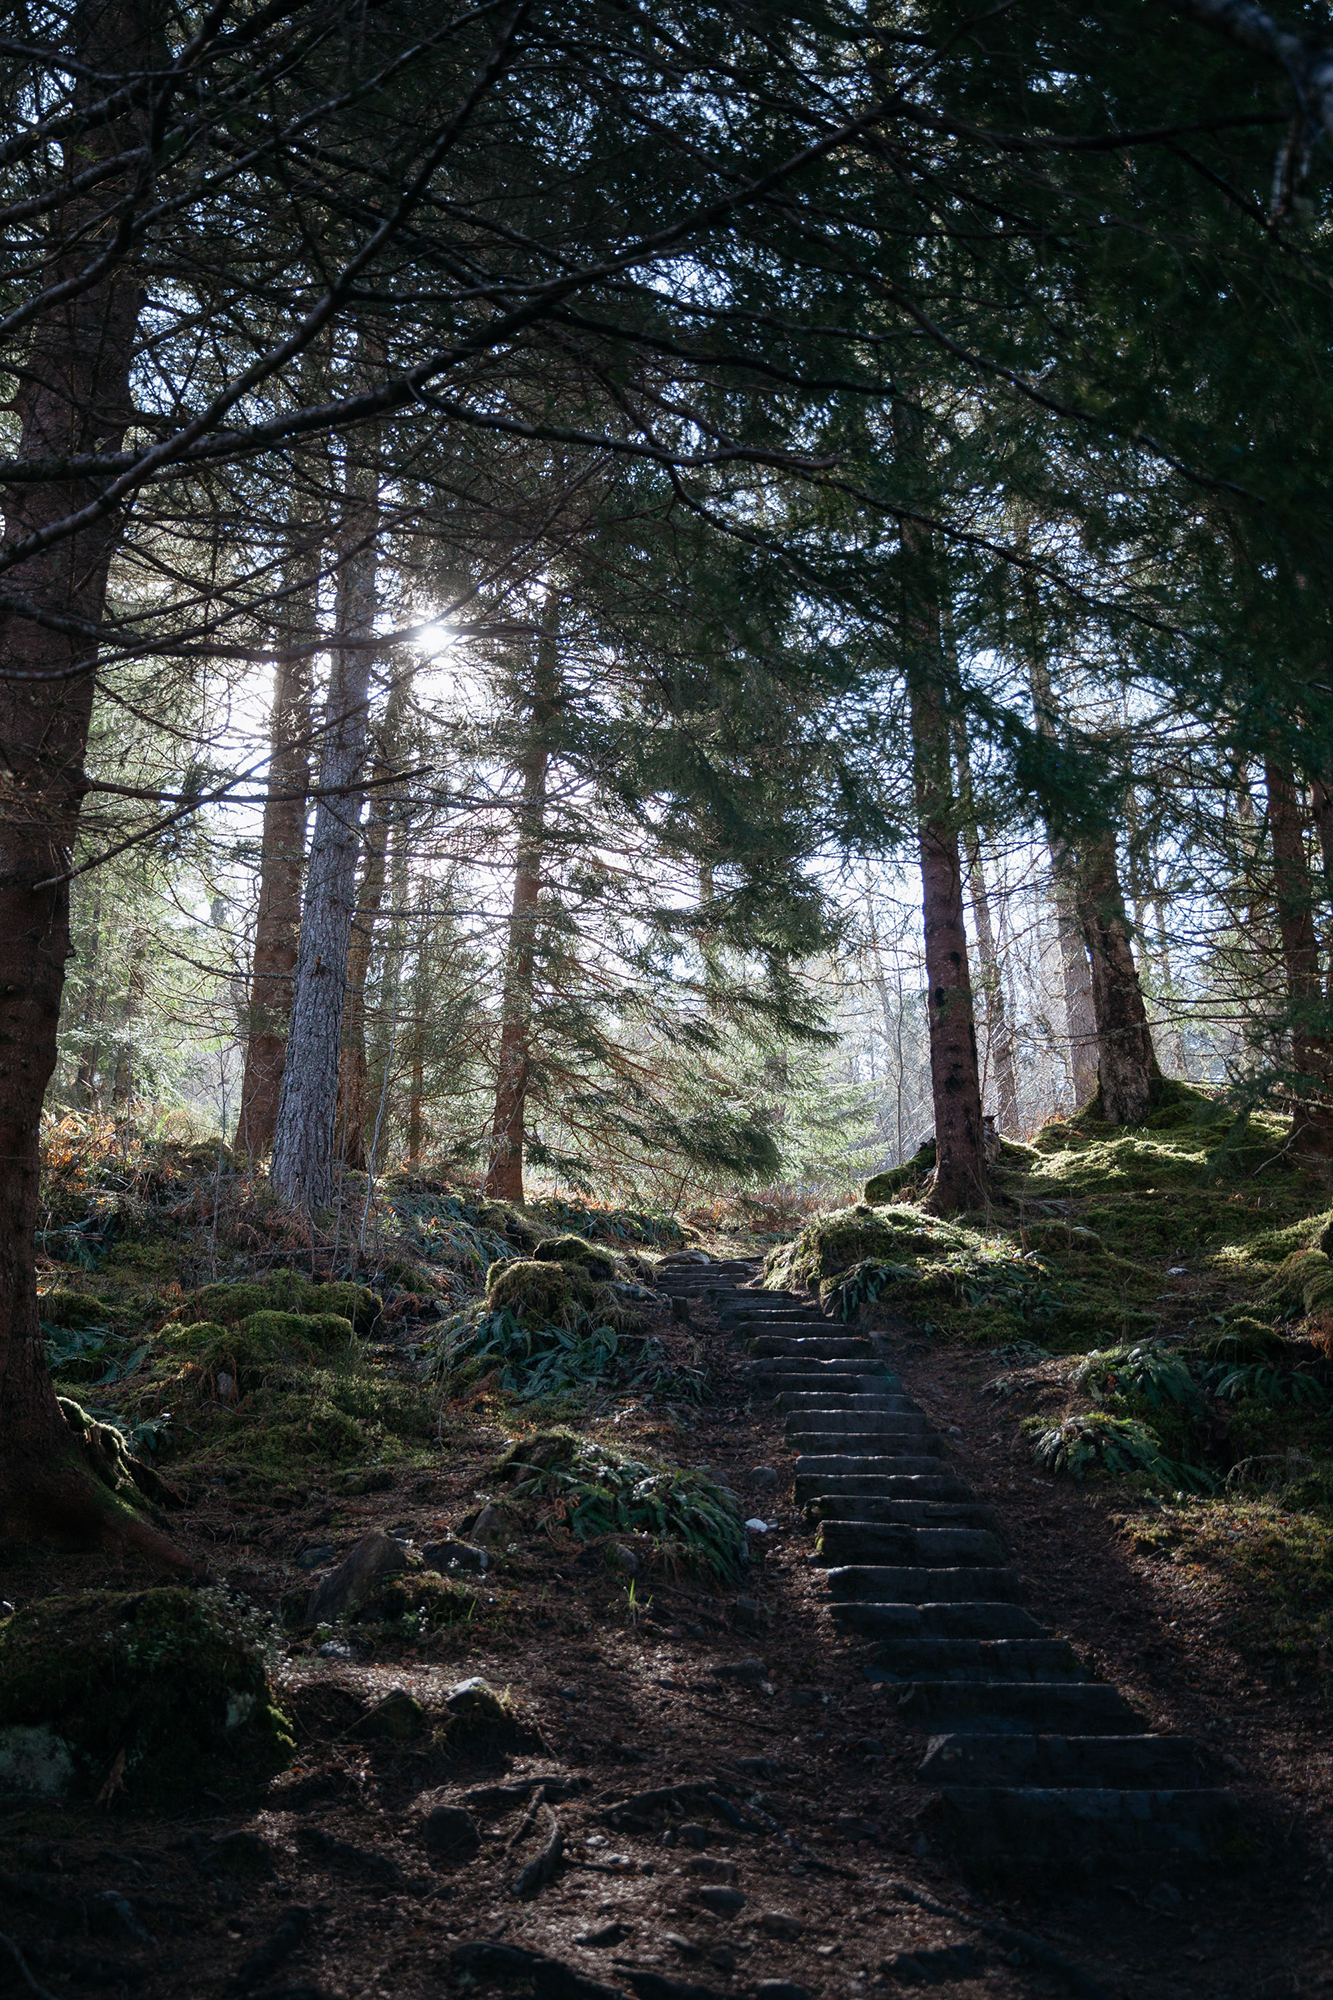 Mid-morning sun streaming through old growth pine forest onto stone steps.